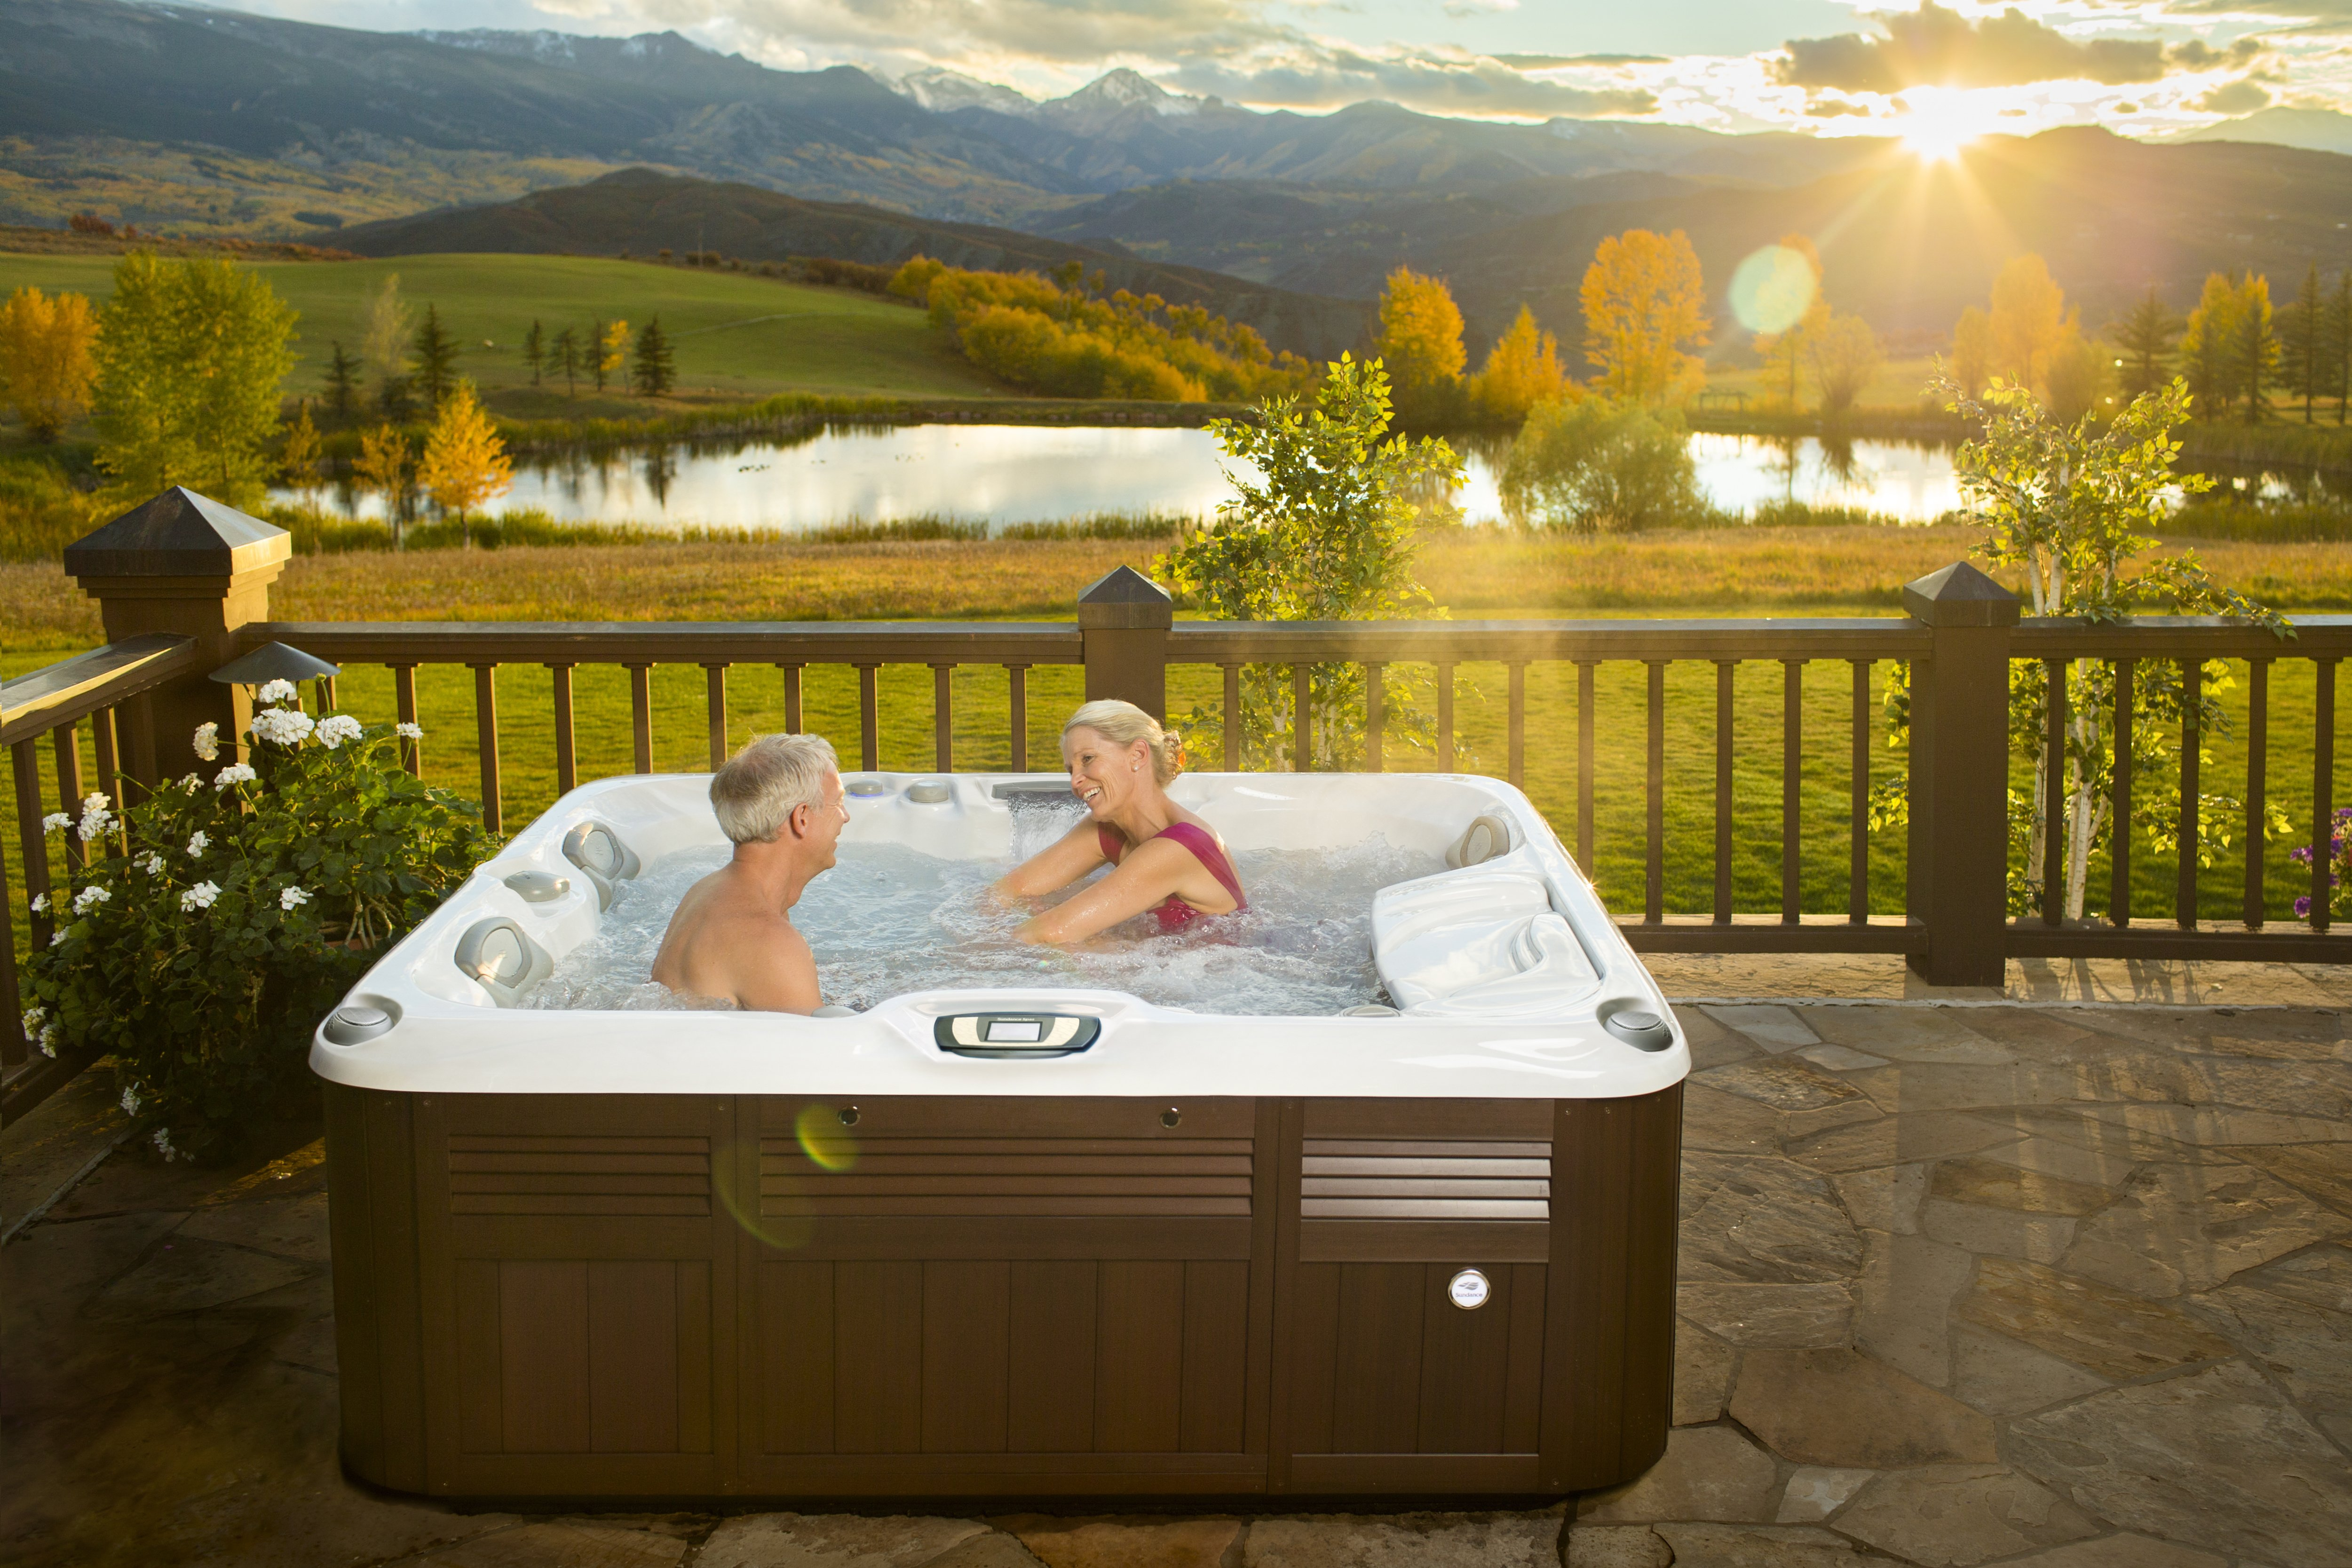 3 Hot Tub Products for Hot Tub Users With Allergies | Aqua-Tech